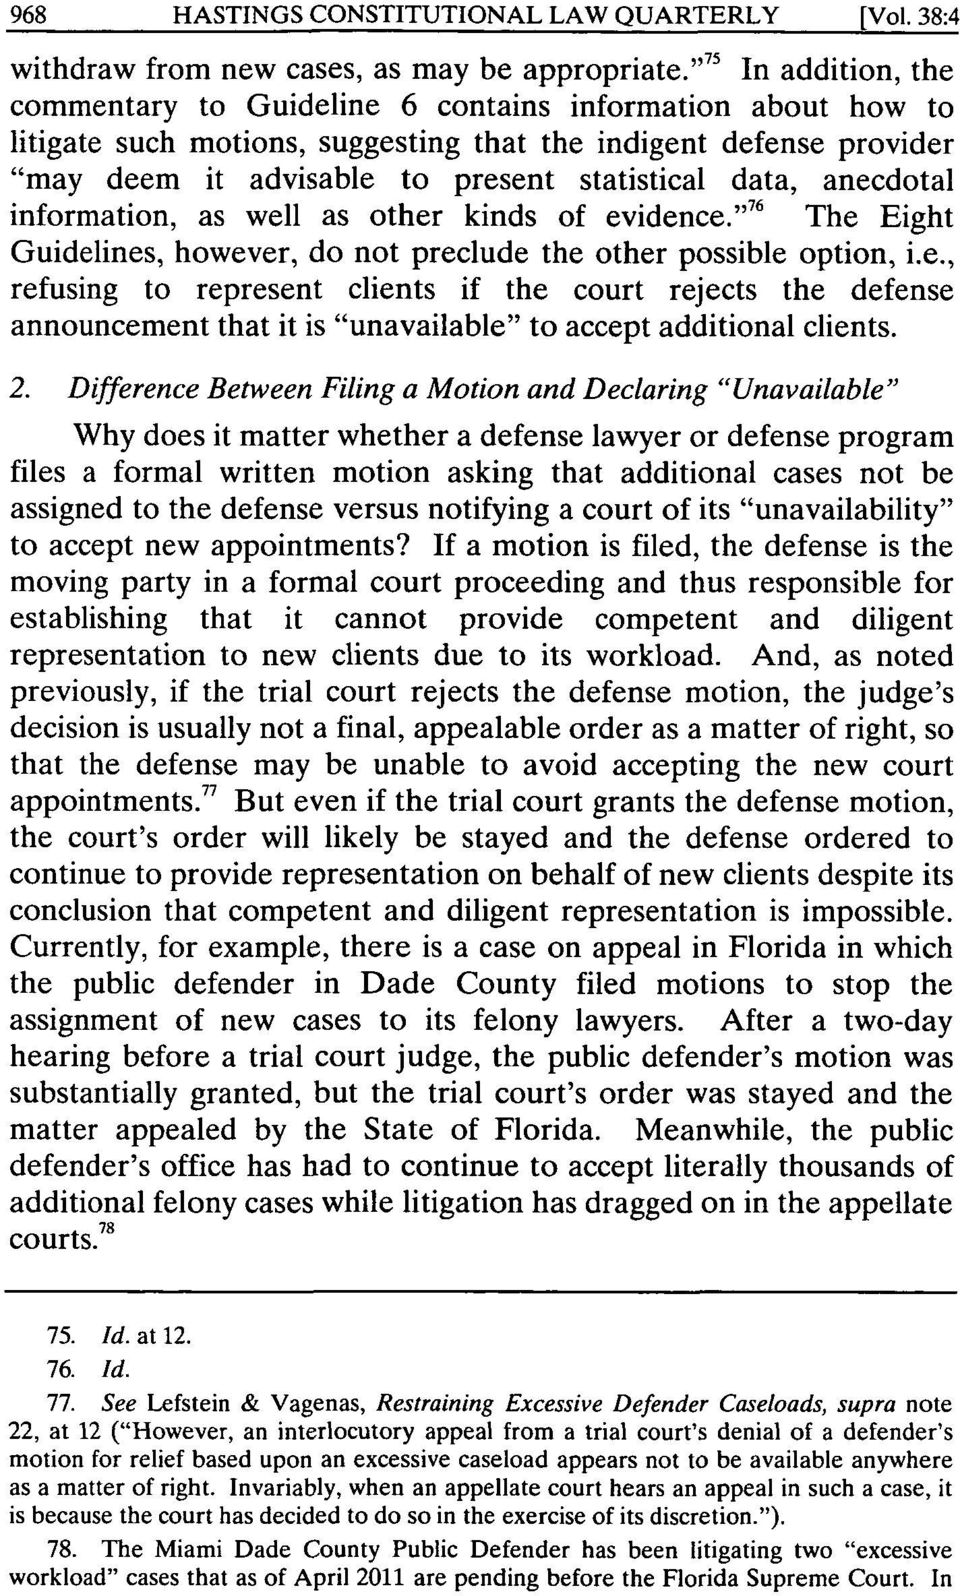 "data, anecdotal information, as well as other kinds of evidence."" 76 The Eight Guidelines, however, do not preclude the other possible option, i.e., refusing to represent clients if the court rejects the defense announcement that it is ""unavailable"" to accept additional clients."